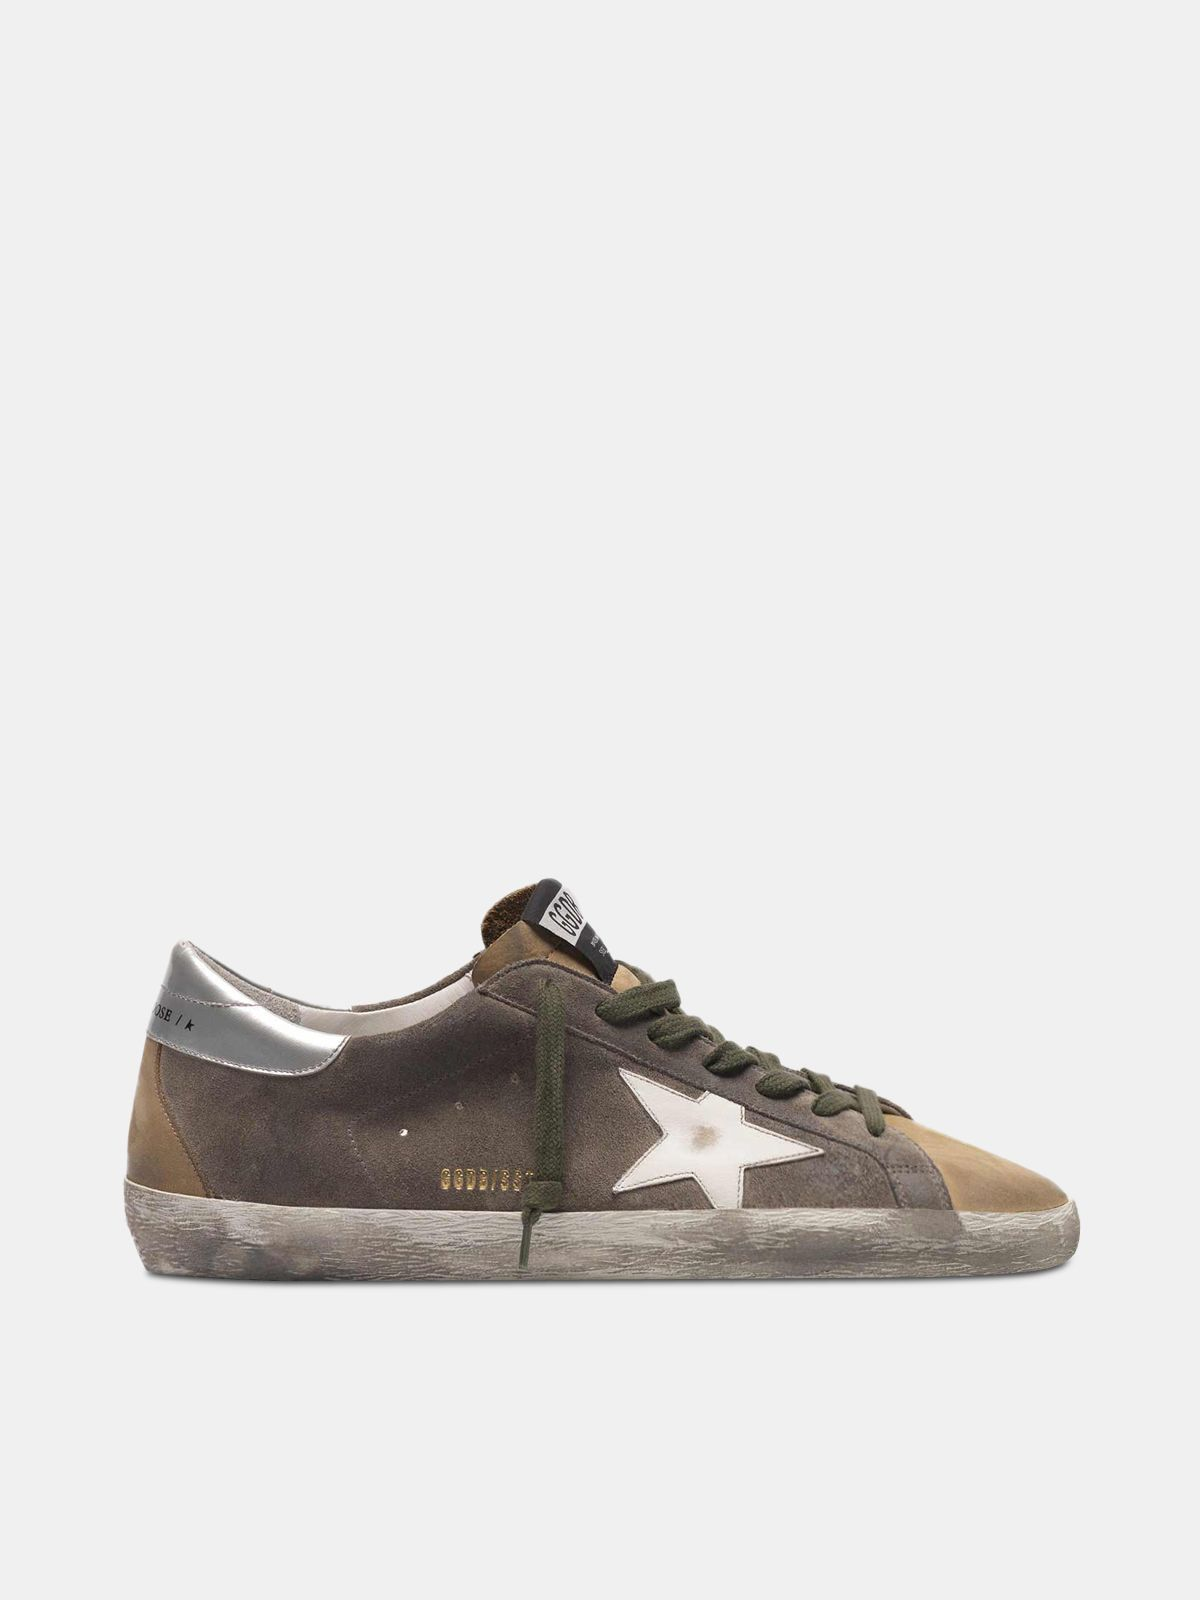 Golden Goose - Two-tone Superstar sneakers in suede with white star in